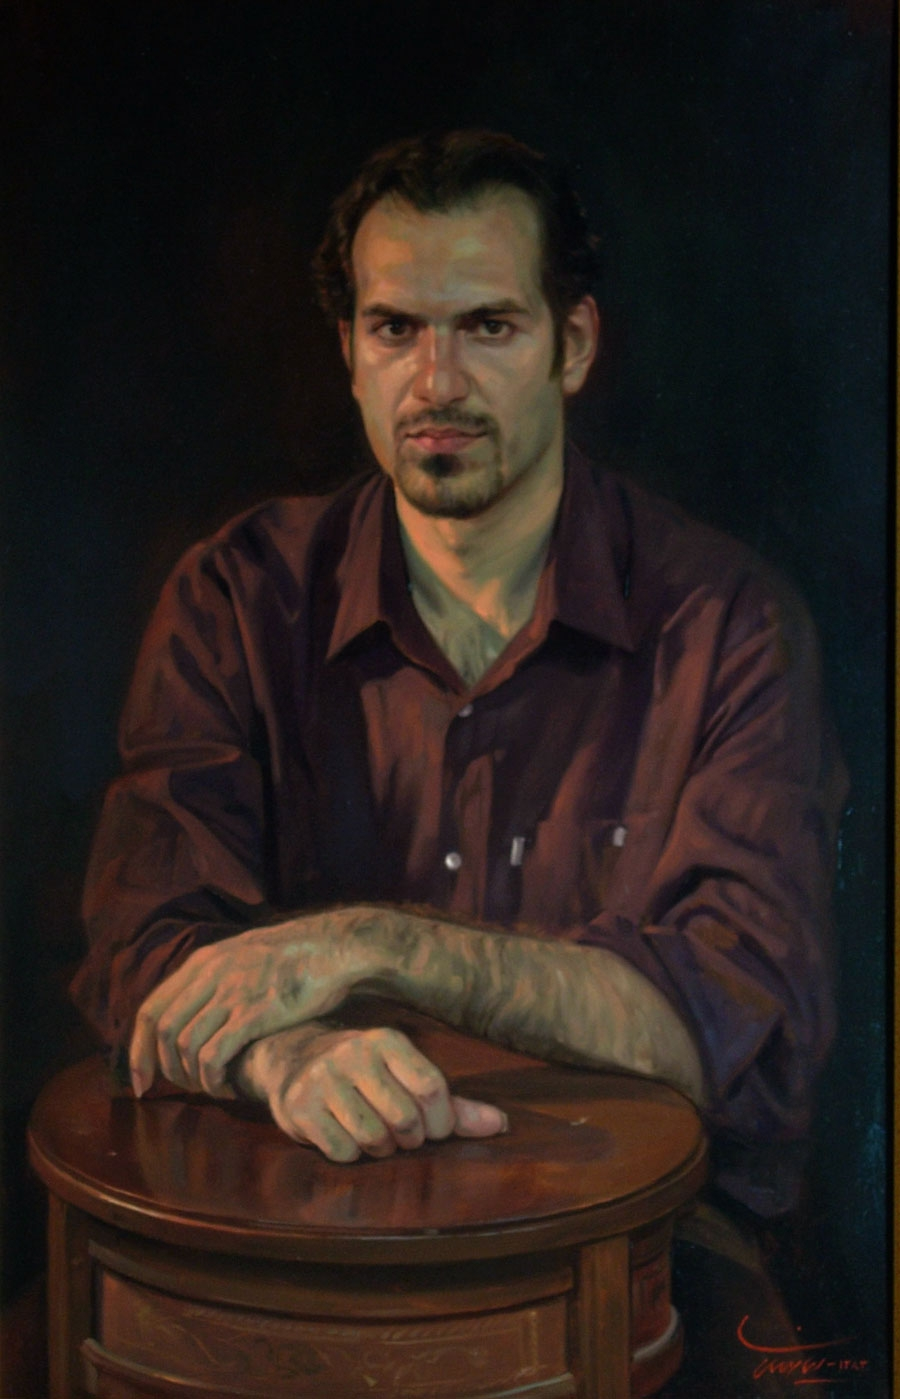 06-Portrait-of-a-Young-Man-Iman-Maleki-Realistic-Paintings-that-Portray-Intense-Expressions-www-designstack-co